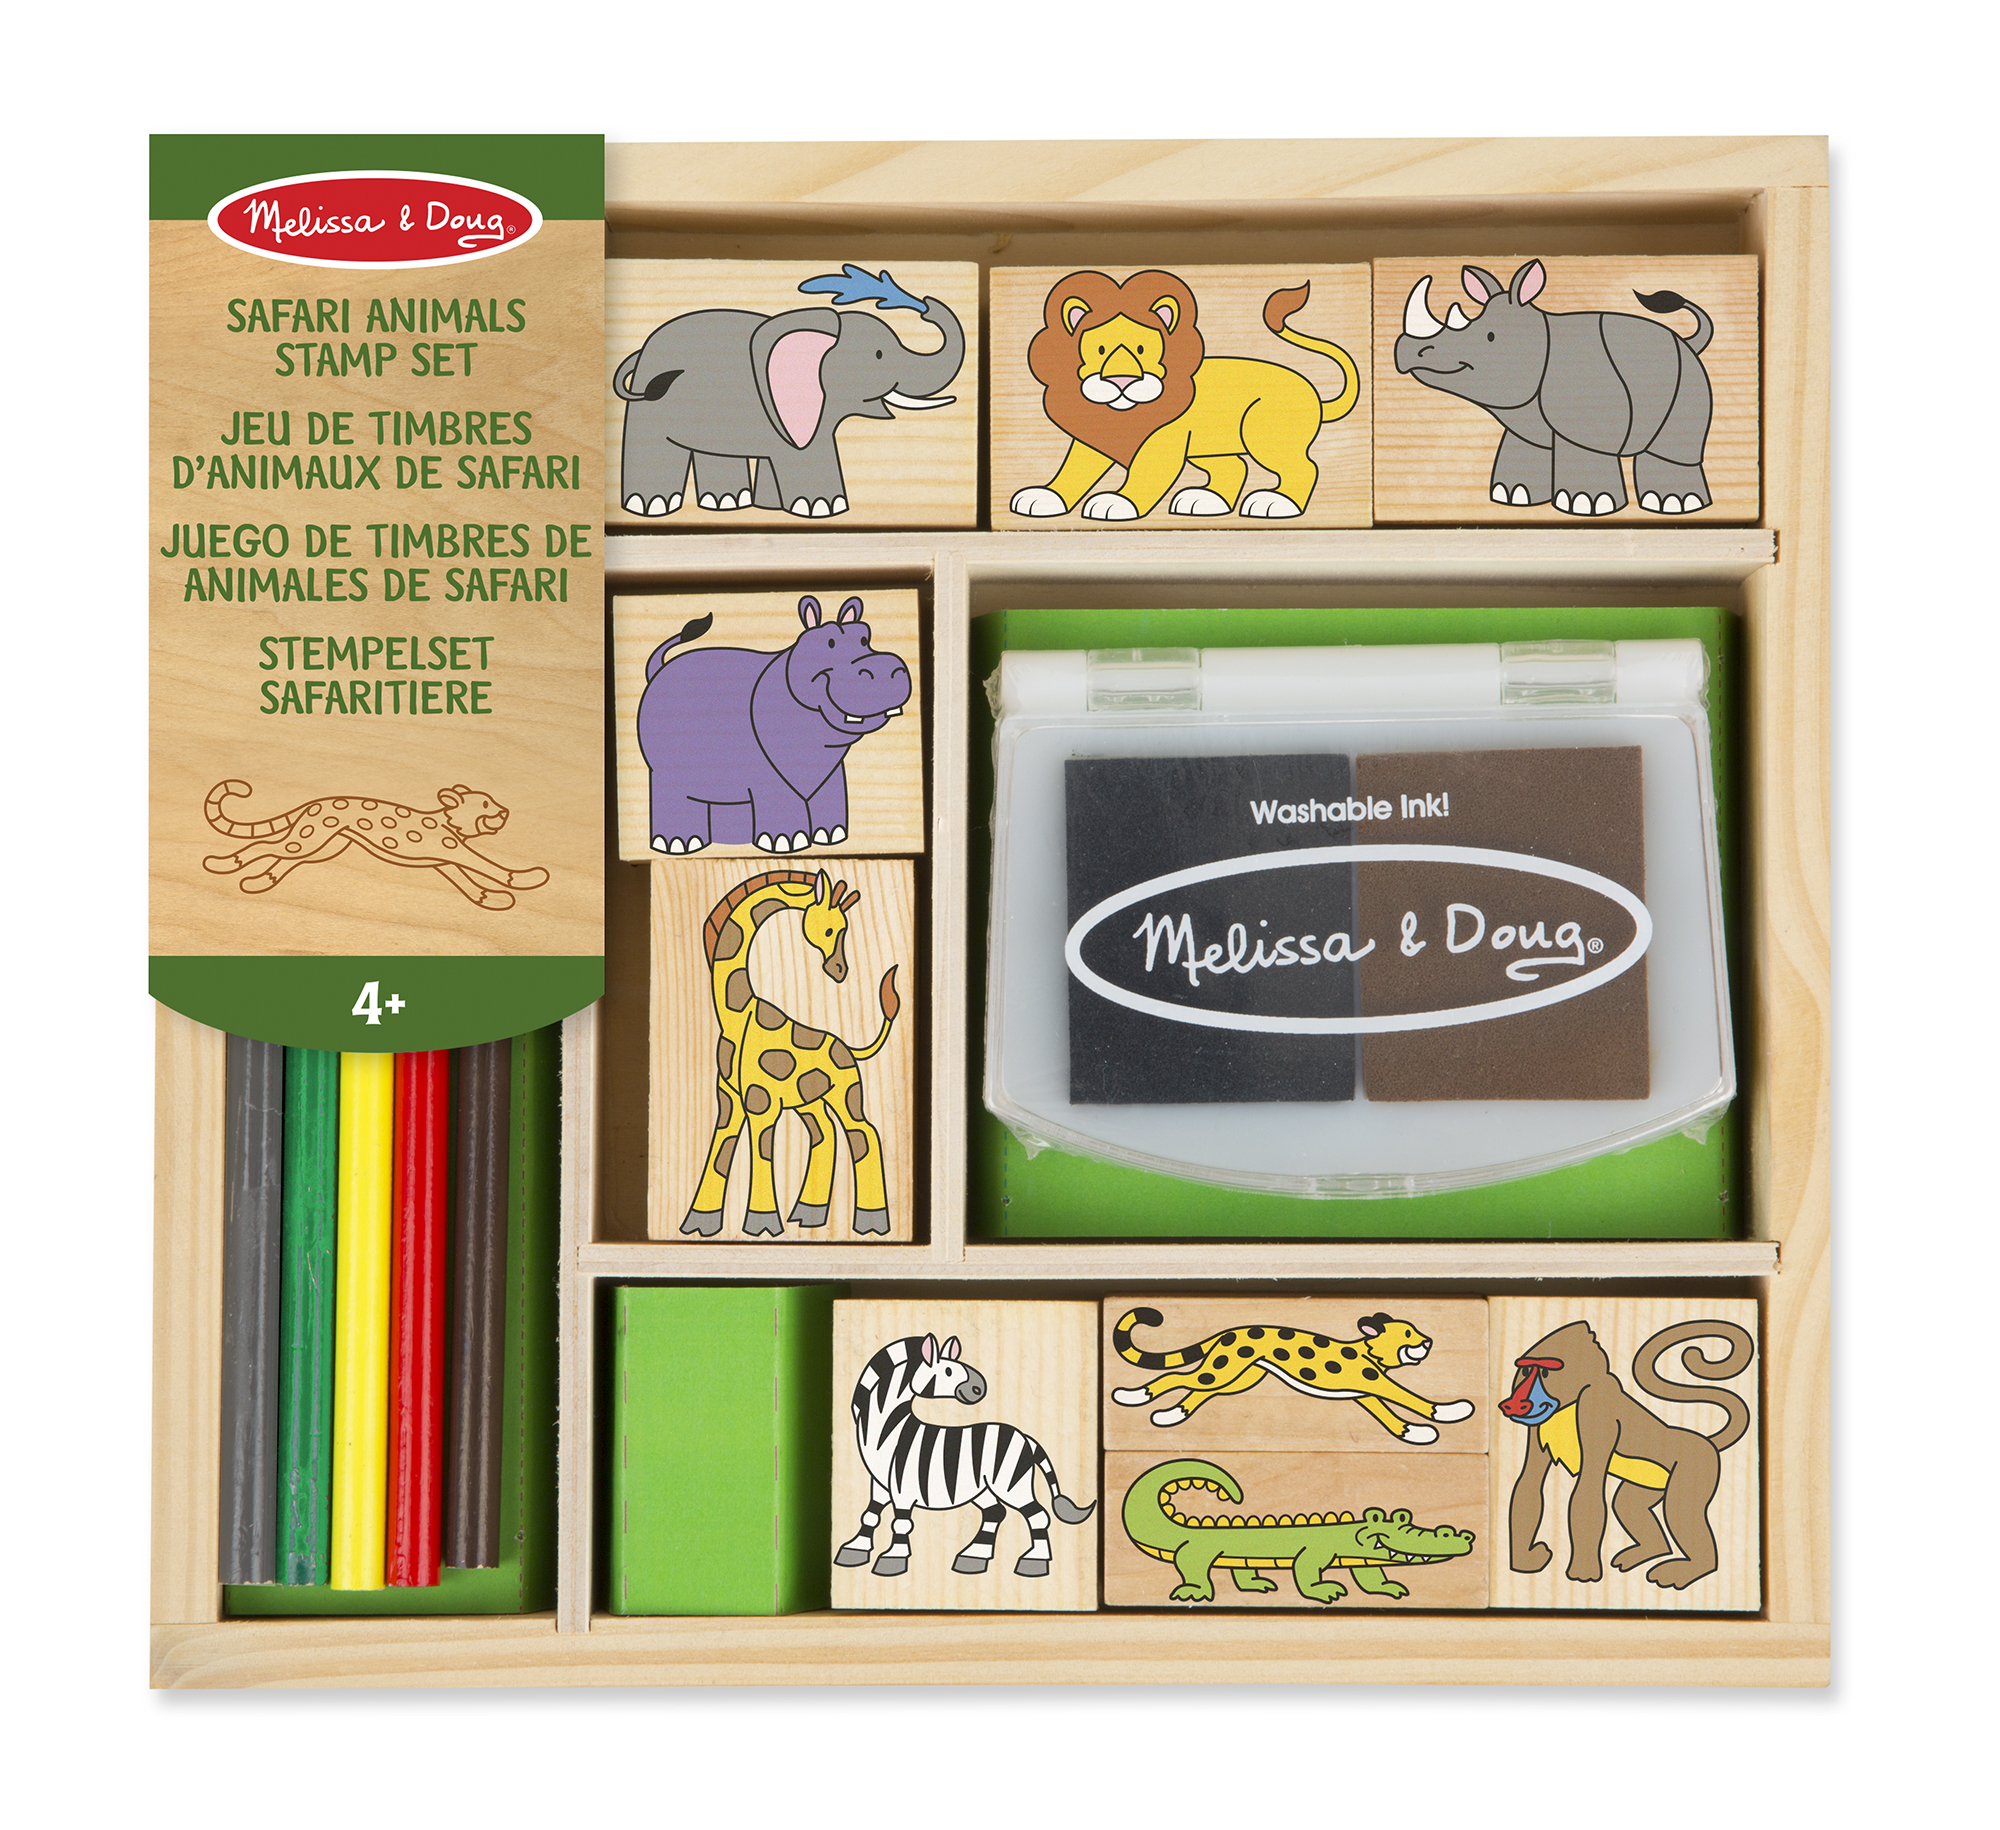 Safari Animal Stamp Set